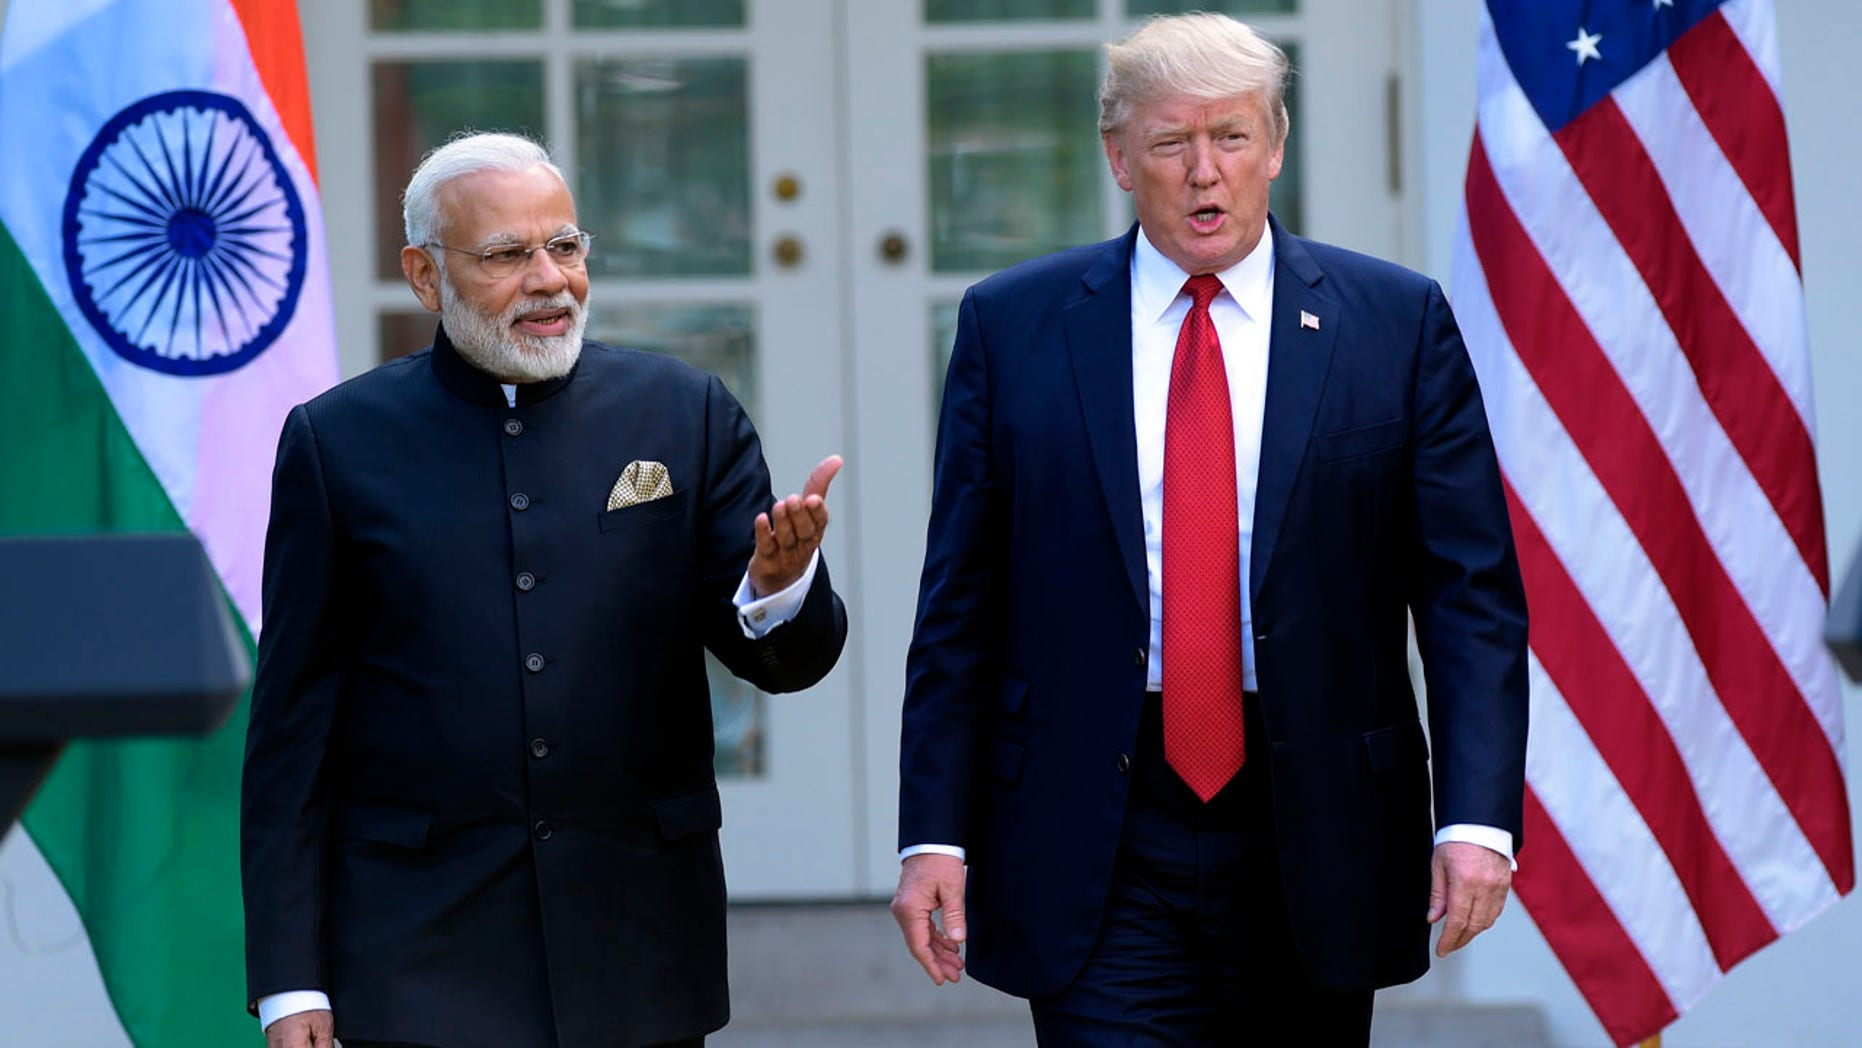 President Donald Trump and Indian Prime Minister Narendra Modi, step into the Rose Garden to make joint statements at the White House in Washington, Monday, June 26, 2017. (AP Photo/Susan Walsh)